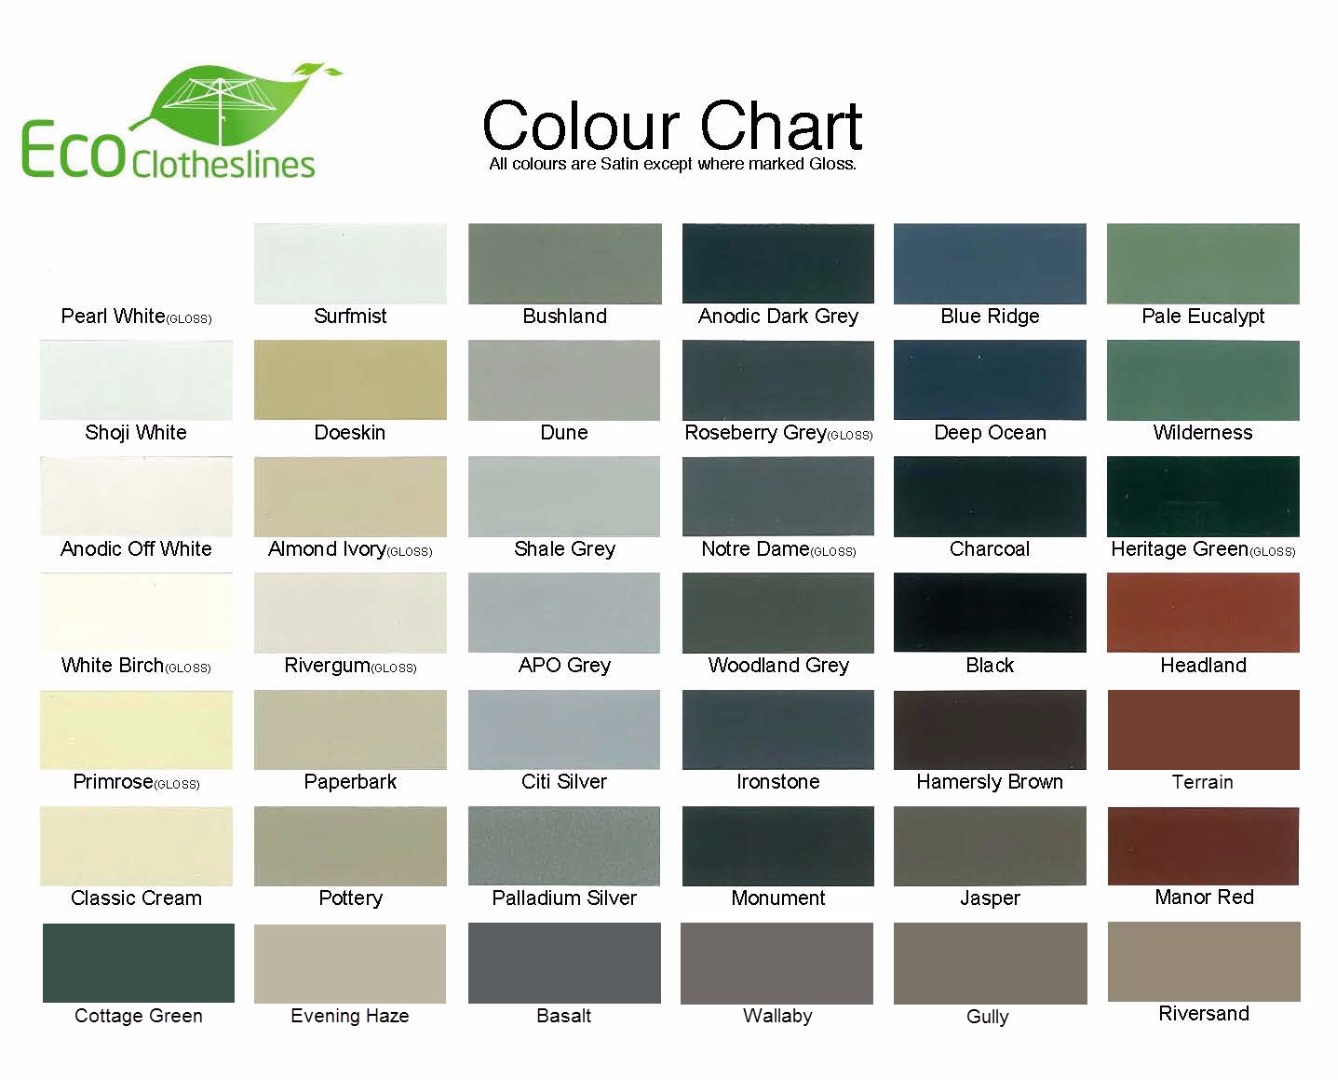 Eco clotheslines colorbond colour chart